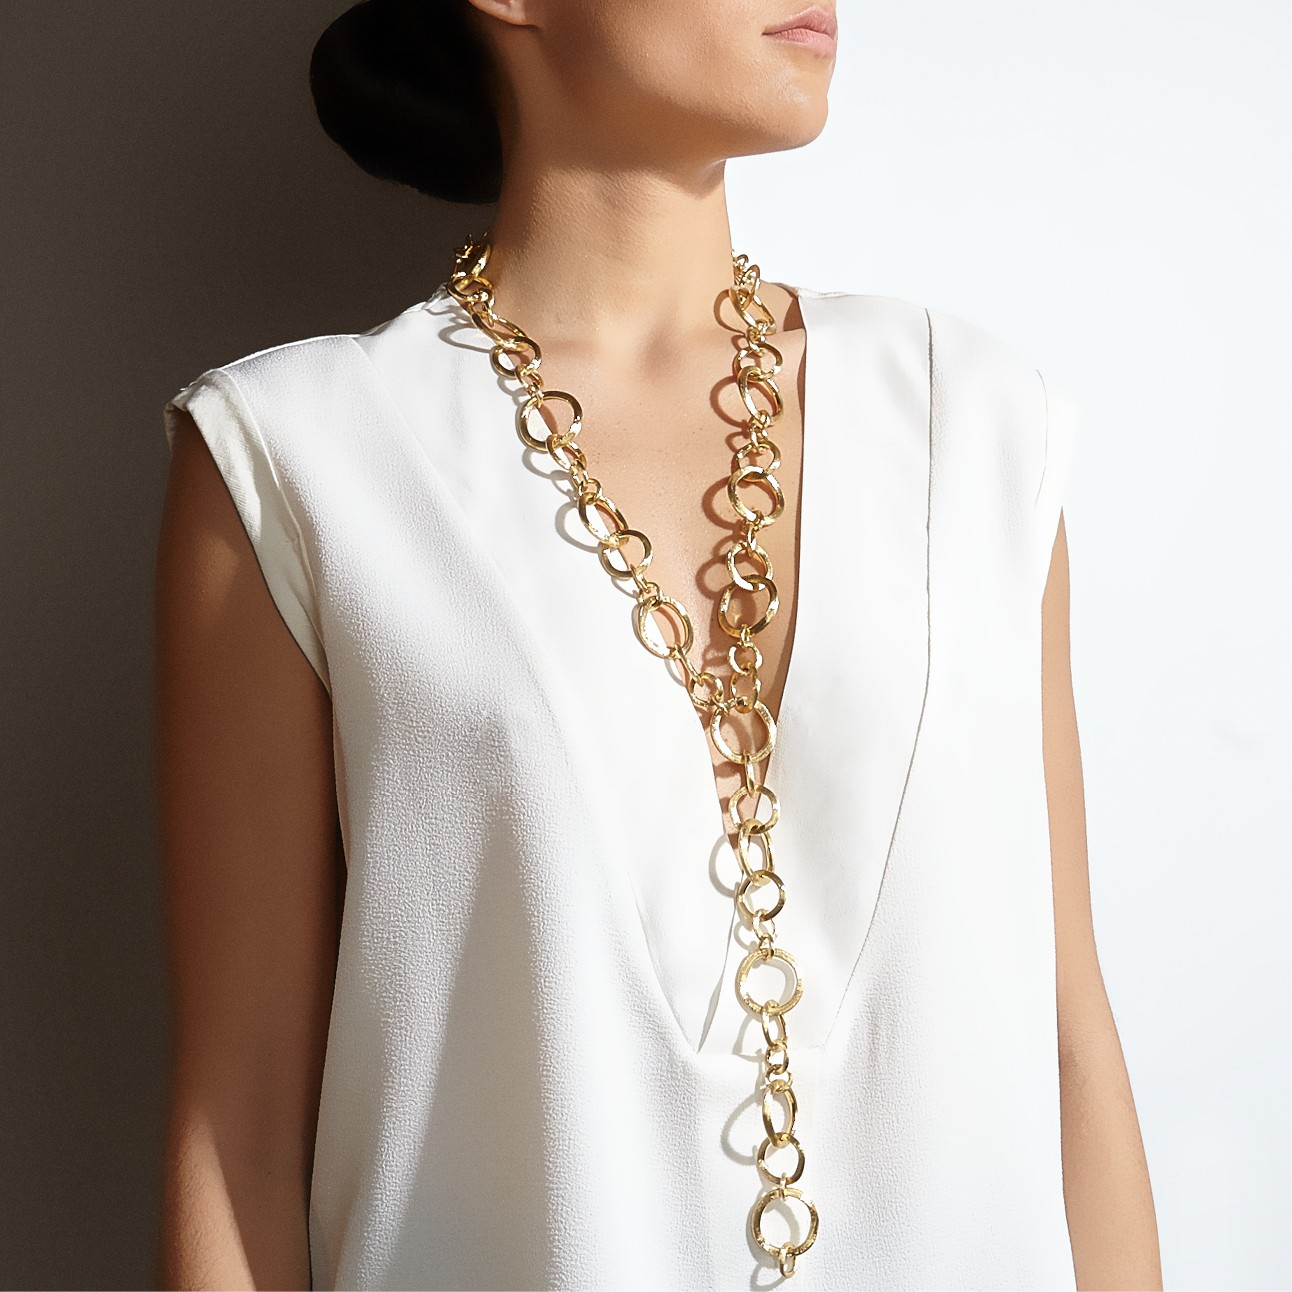 Marco Bicego necklace in Palm Desert, California on El Paseo